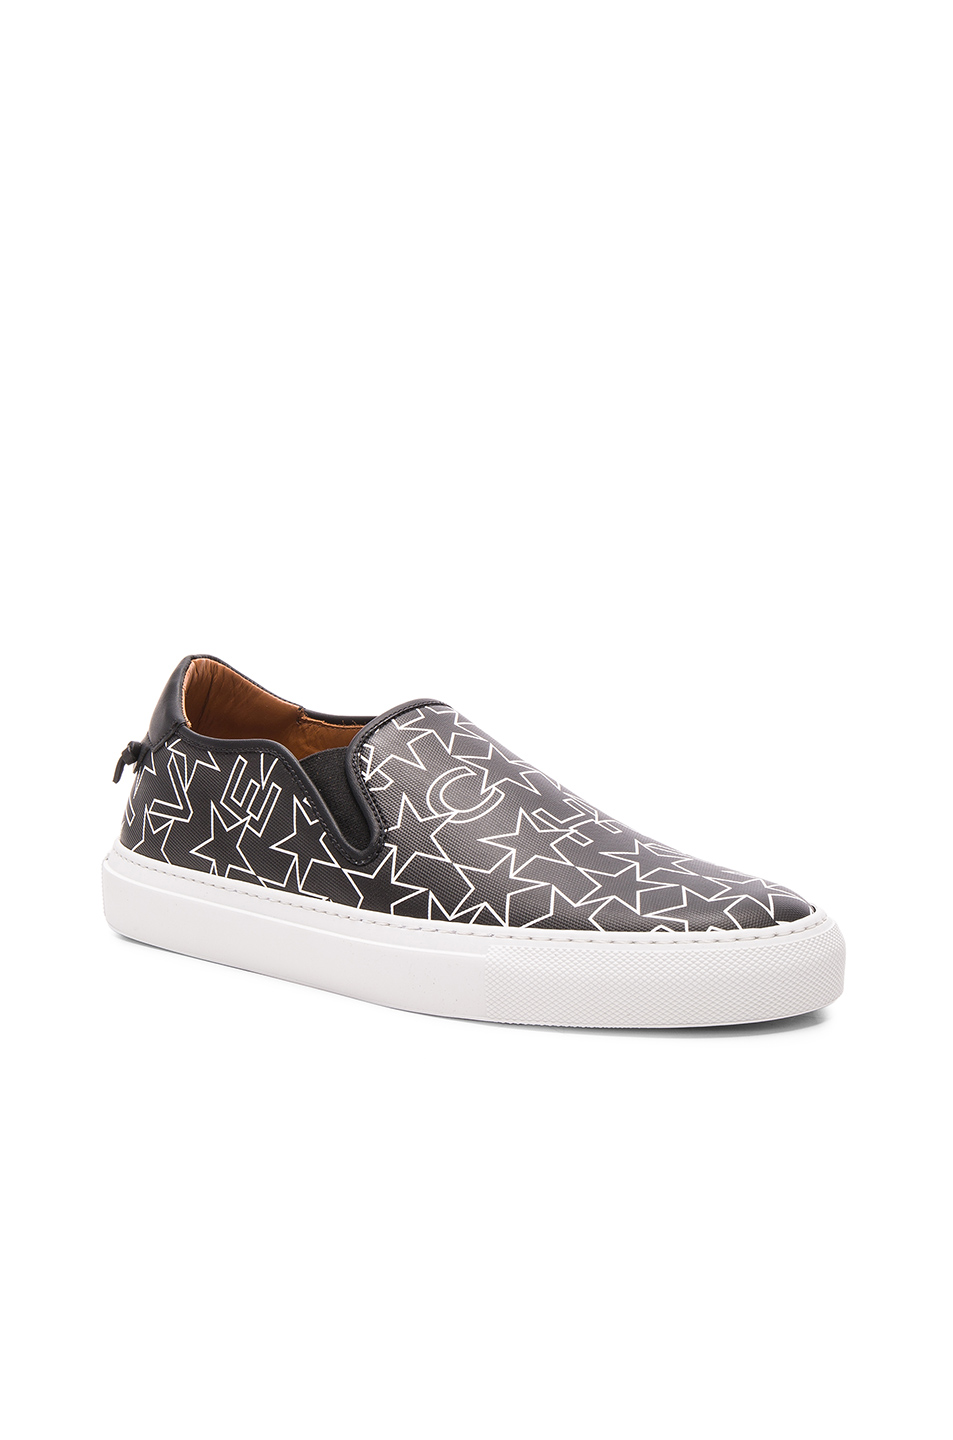 Givenchy Coated Canvas Street Skate Sneakers in Black,Geometric Print